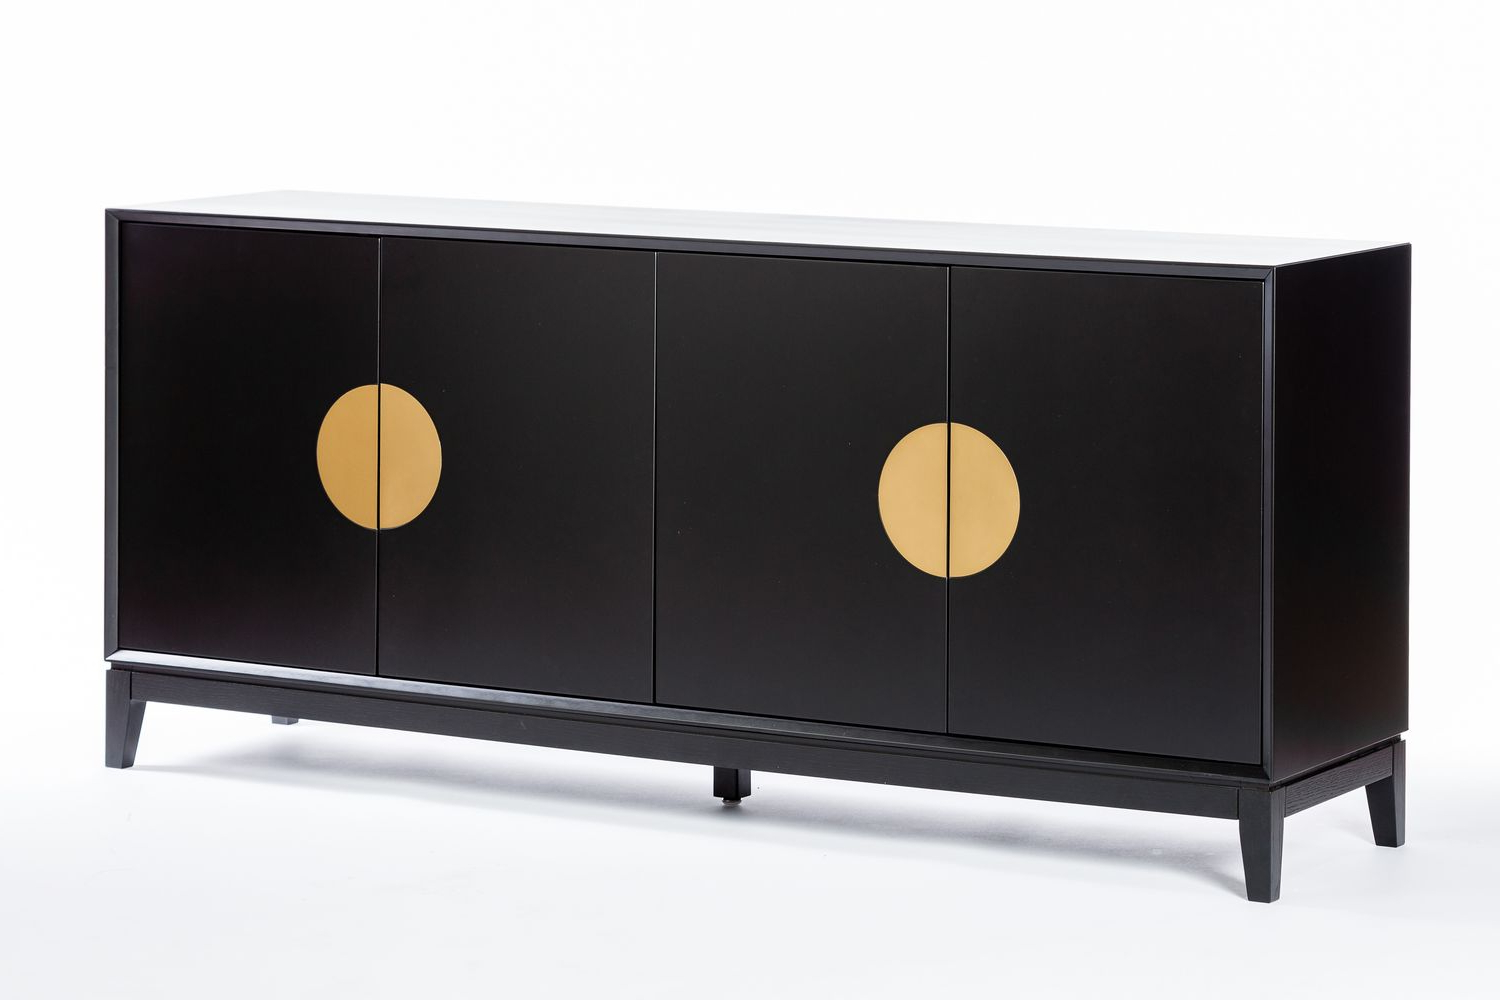 Rani 4 Door Sideboards Intended For Well Known Unico Milano (View 18 of 20)